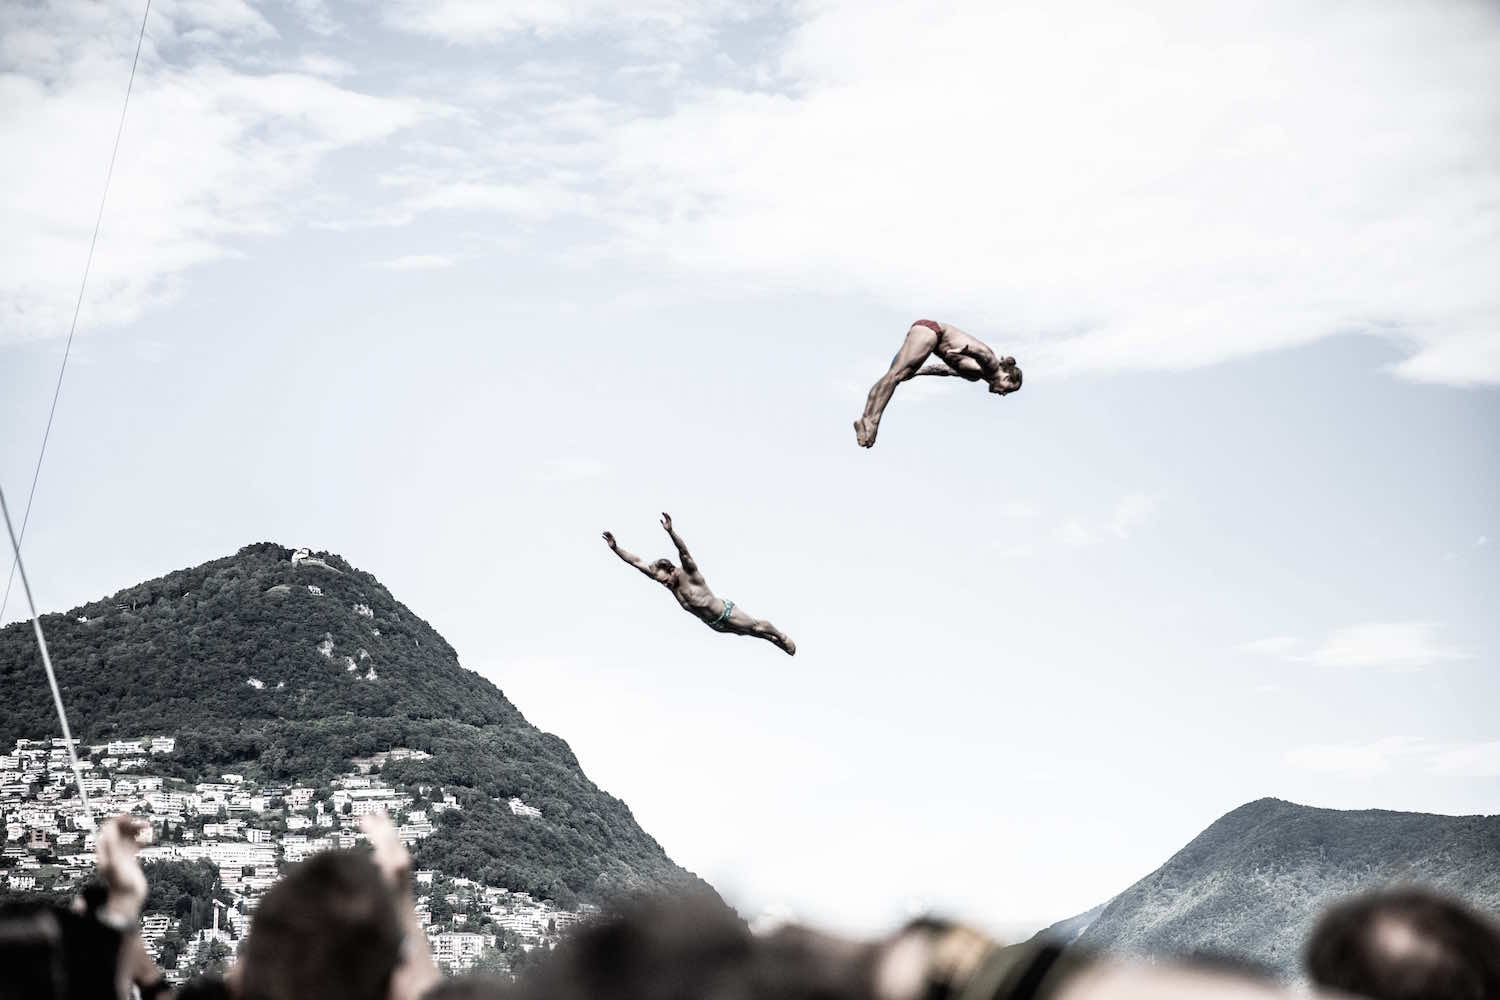 Synchronized High Diving, Lugano Cliff Diving 2018